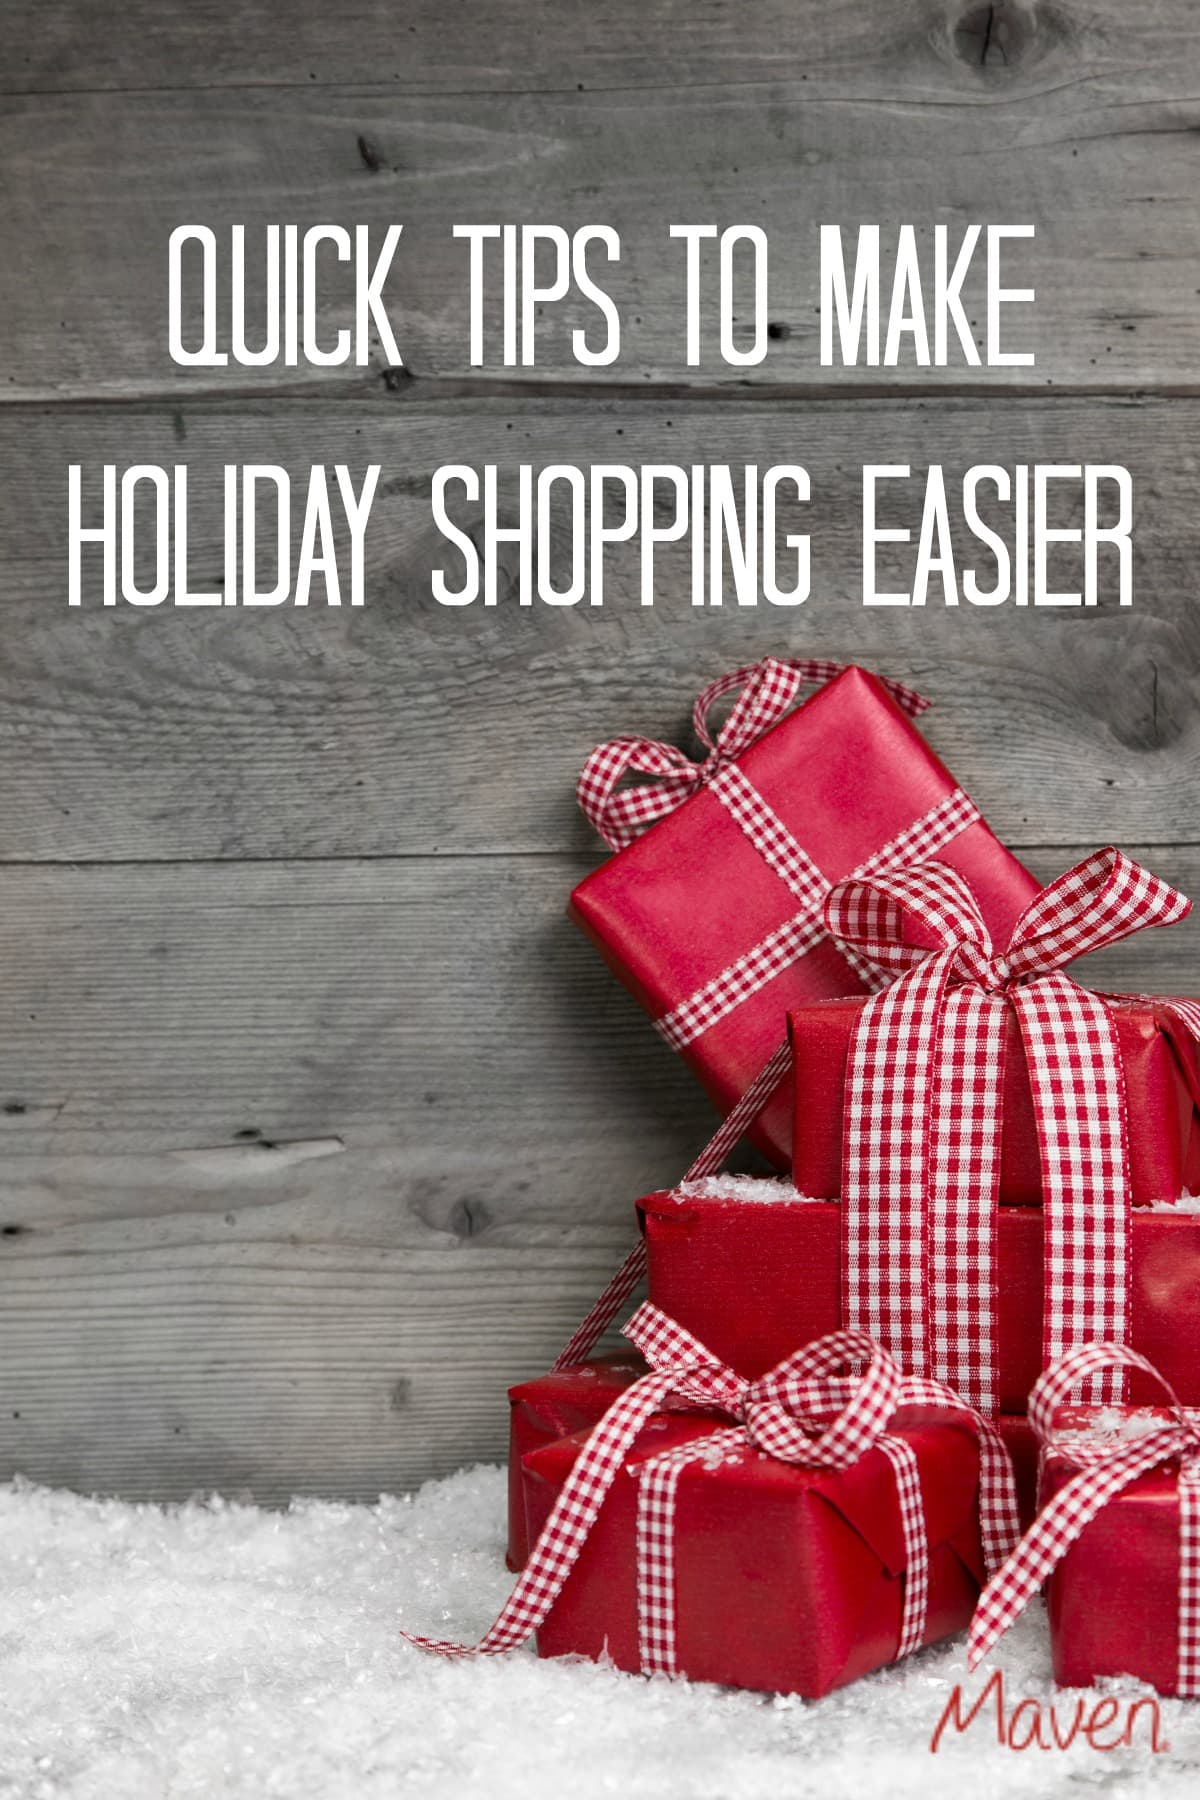 Don't miss these quick tips to make holiday shopping easier! {ad}